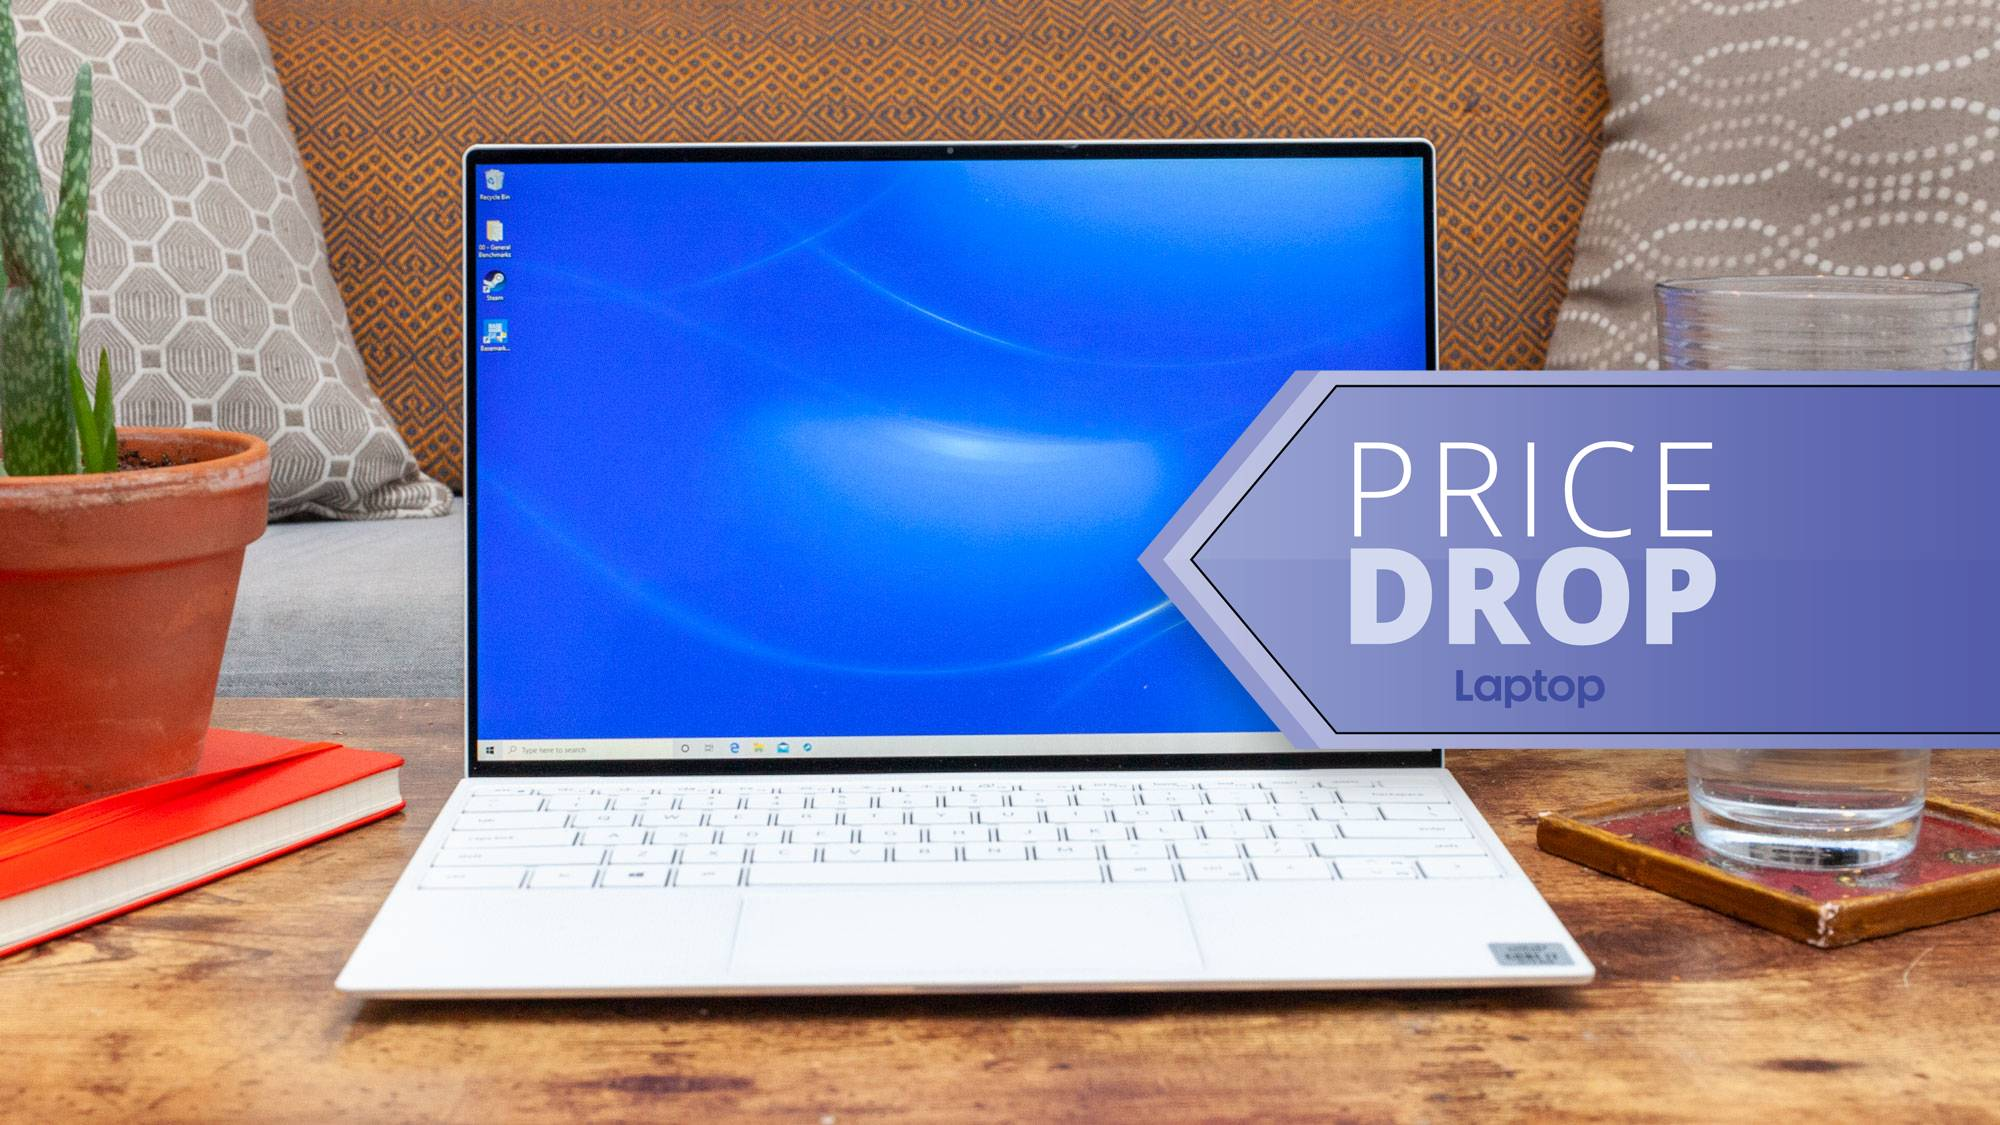 Best Prime Day Laptop Deals Save On Macbooks Chromebooks And More Laptop Mag